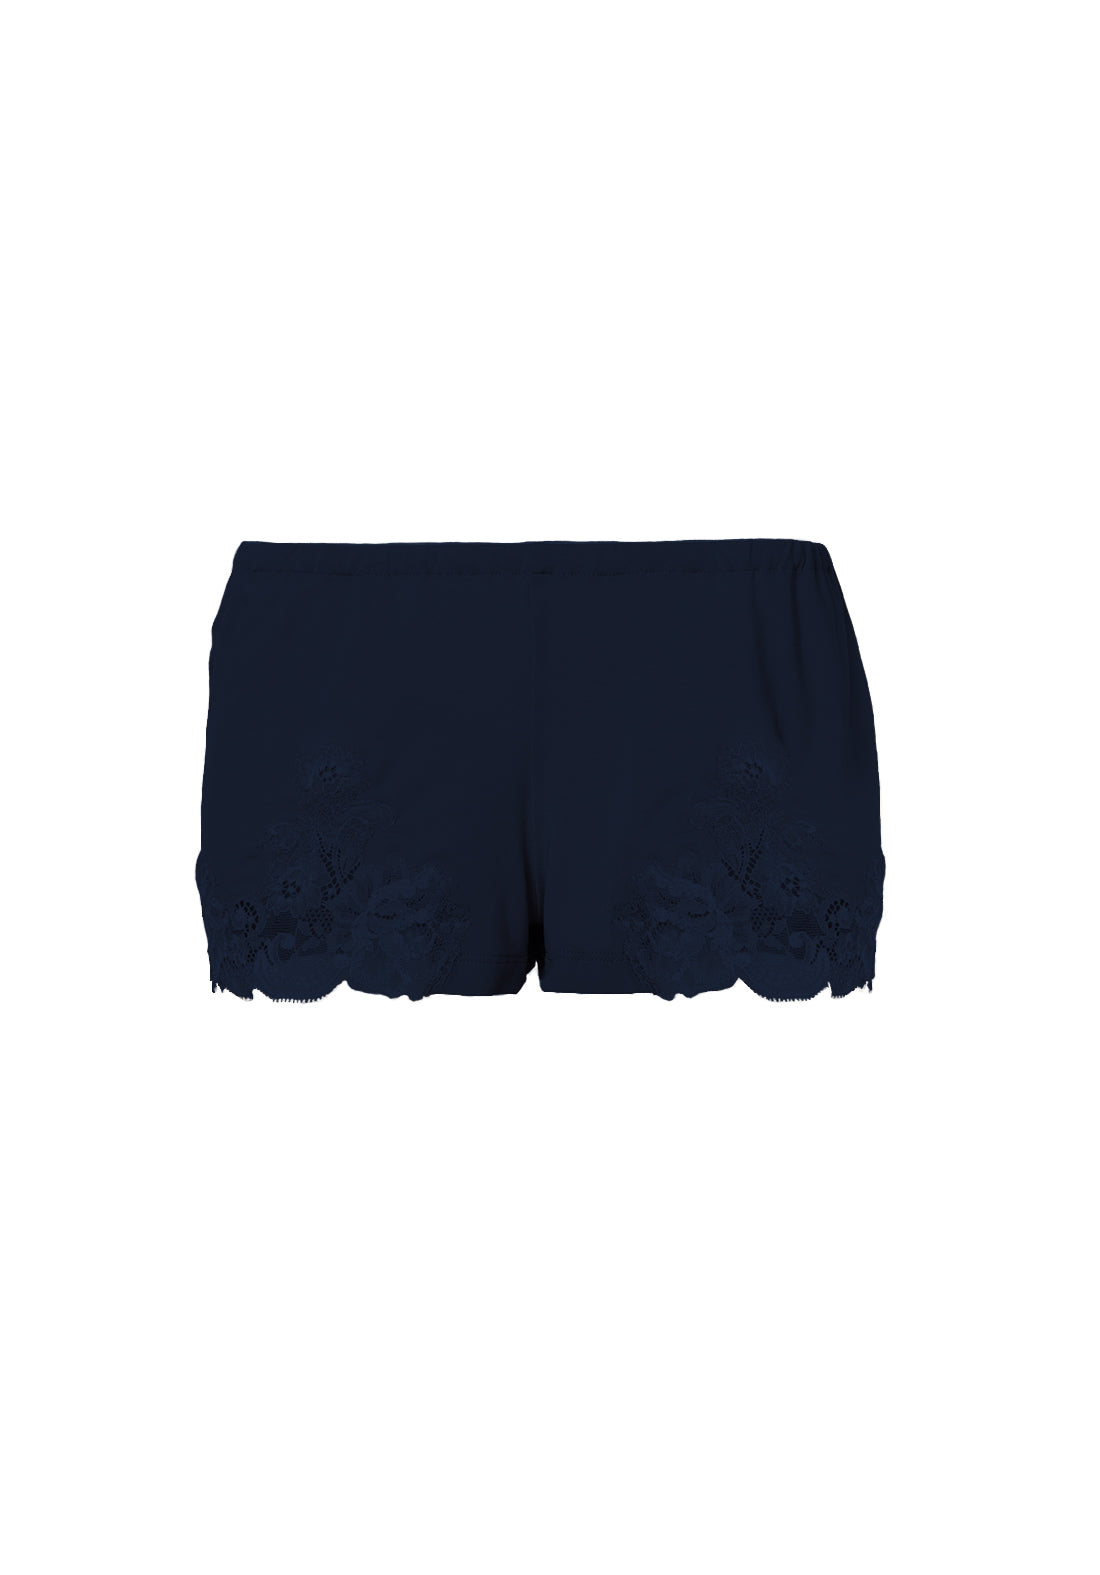 Isolde Shorts in Navy Blue